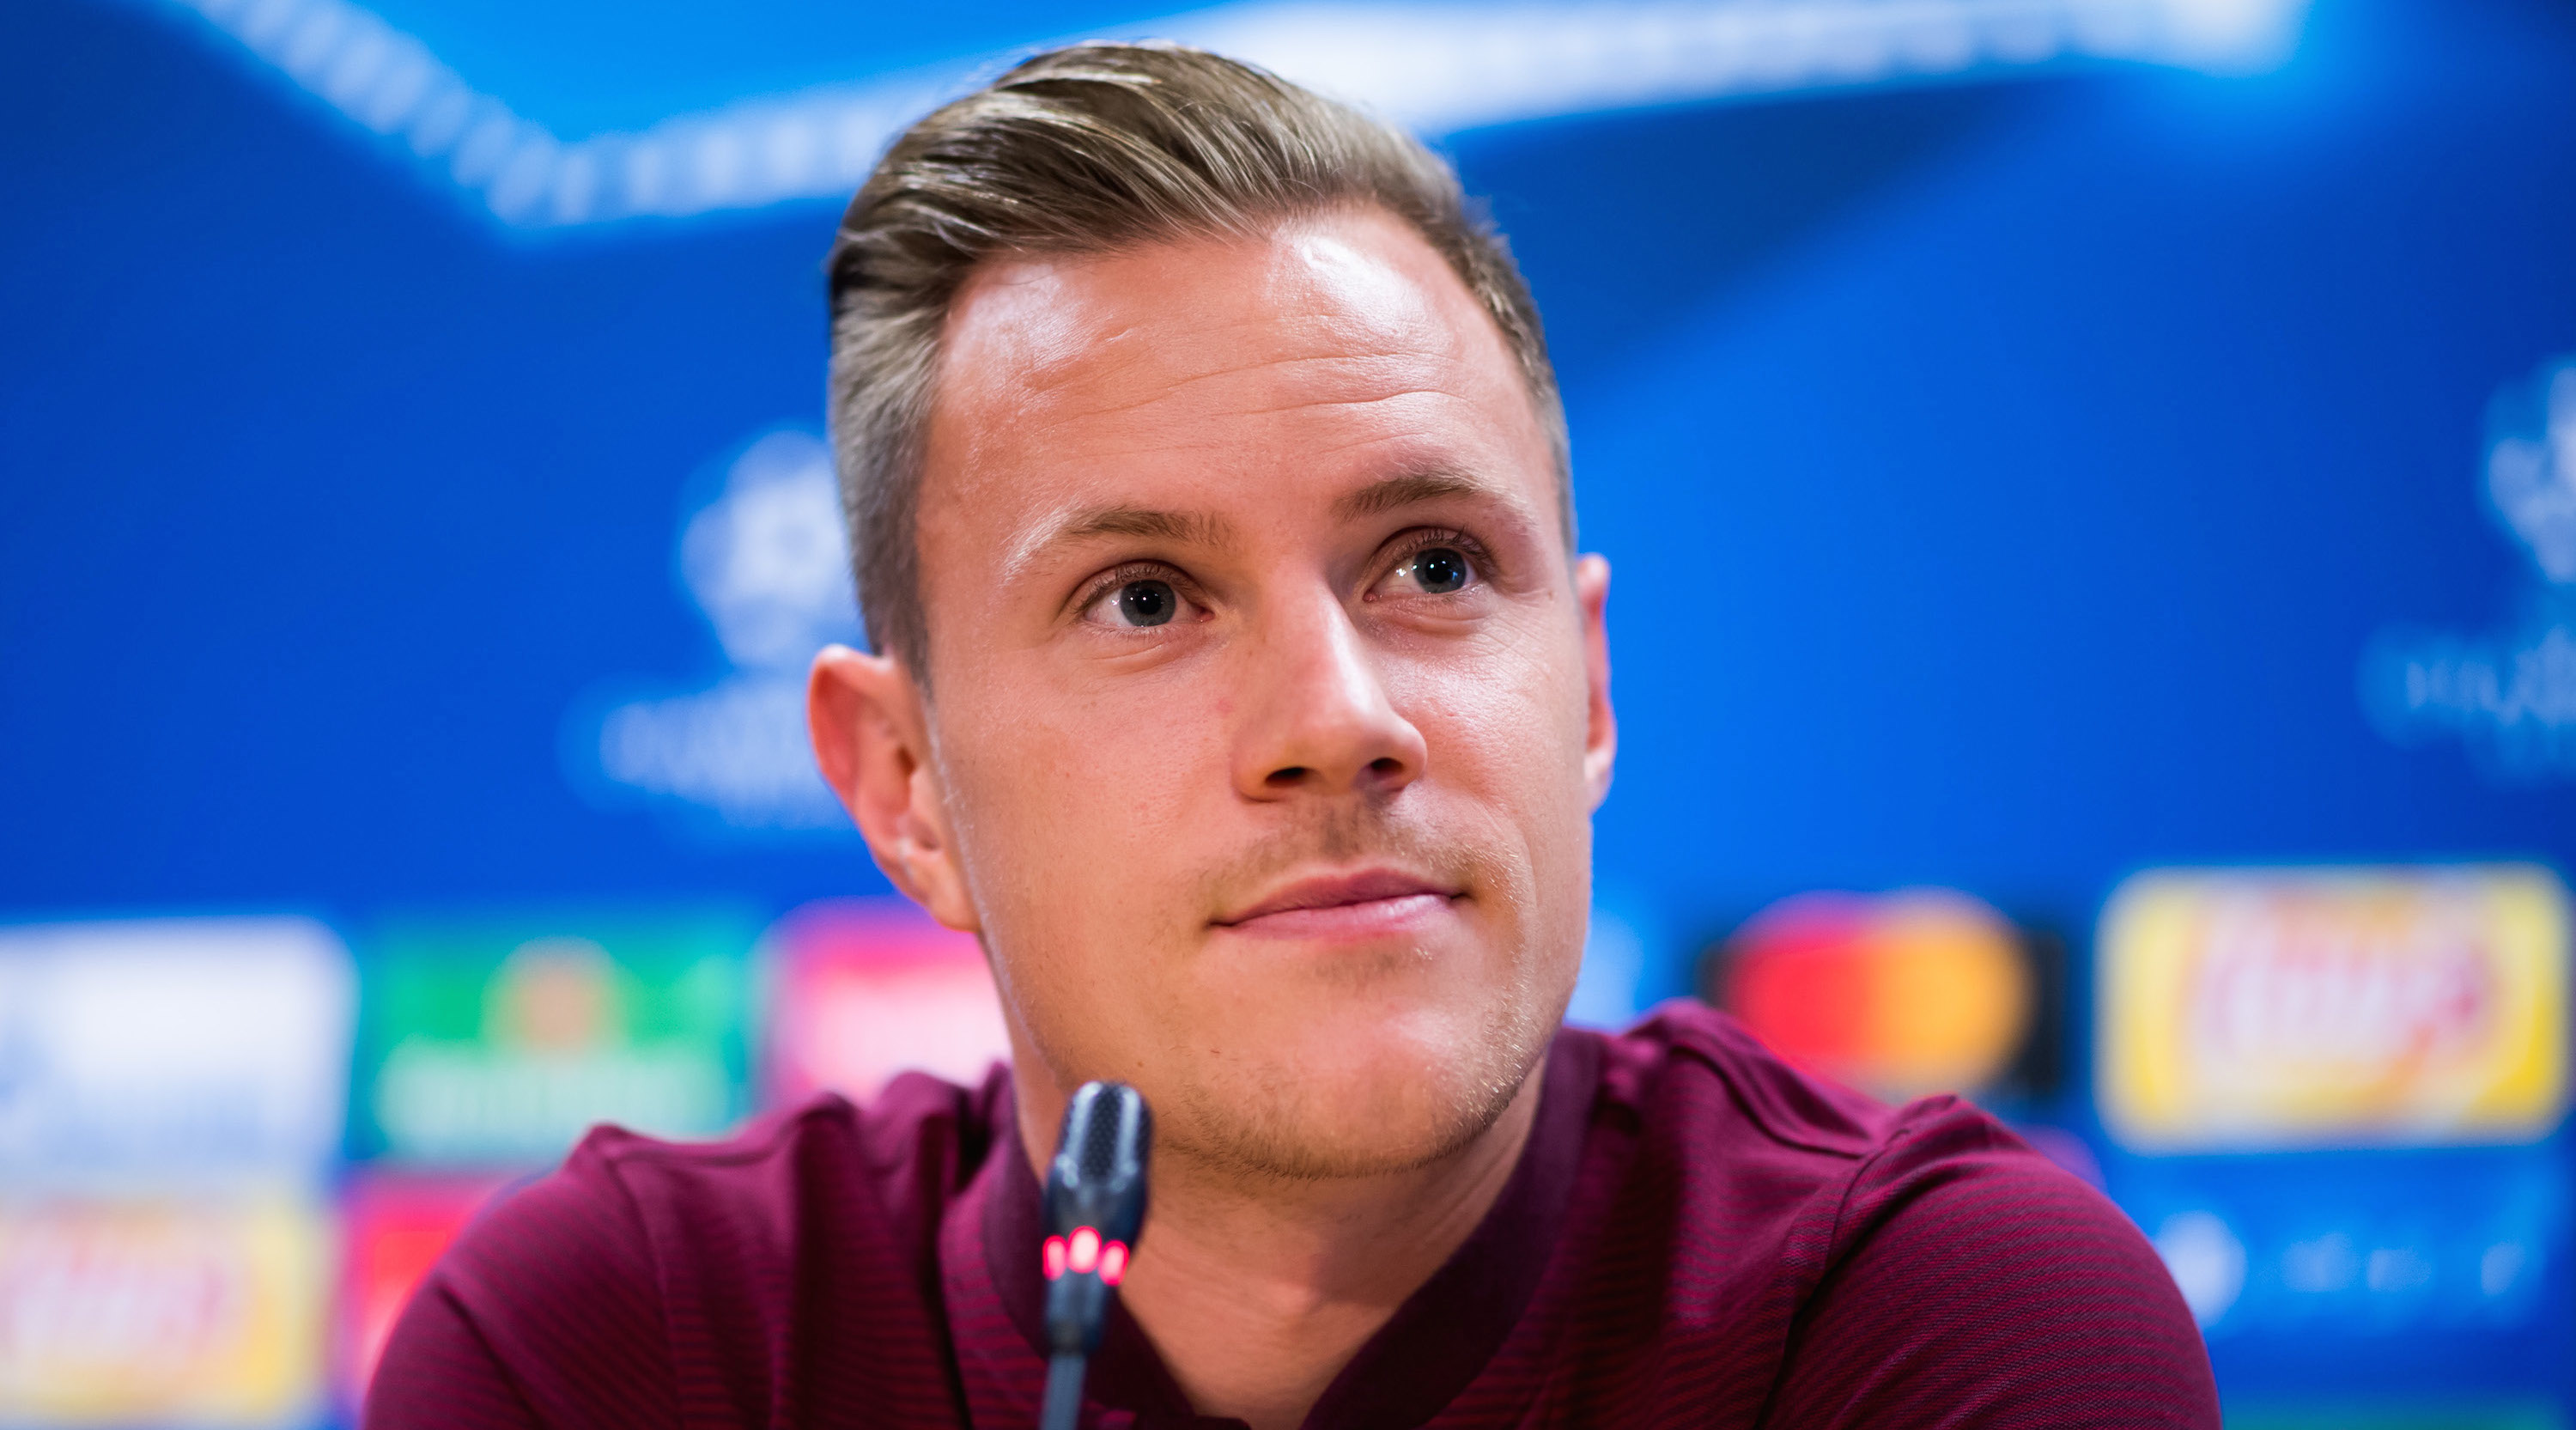 BARCELONA, SPAIN - SEPTEMBER 11: Marc-Andre Ter Stegen of FC Barcelona faces the media during a press conference, on the eve of their UEFA Champions League Group D match against Juventus, on September 11, 2017 in Barcelona, Spain. (Photo by Alex Caparros/Getty Images)